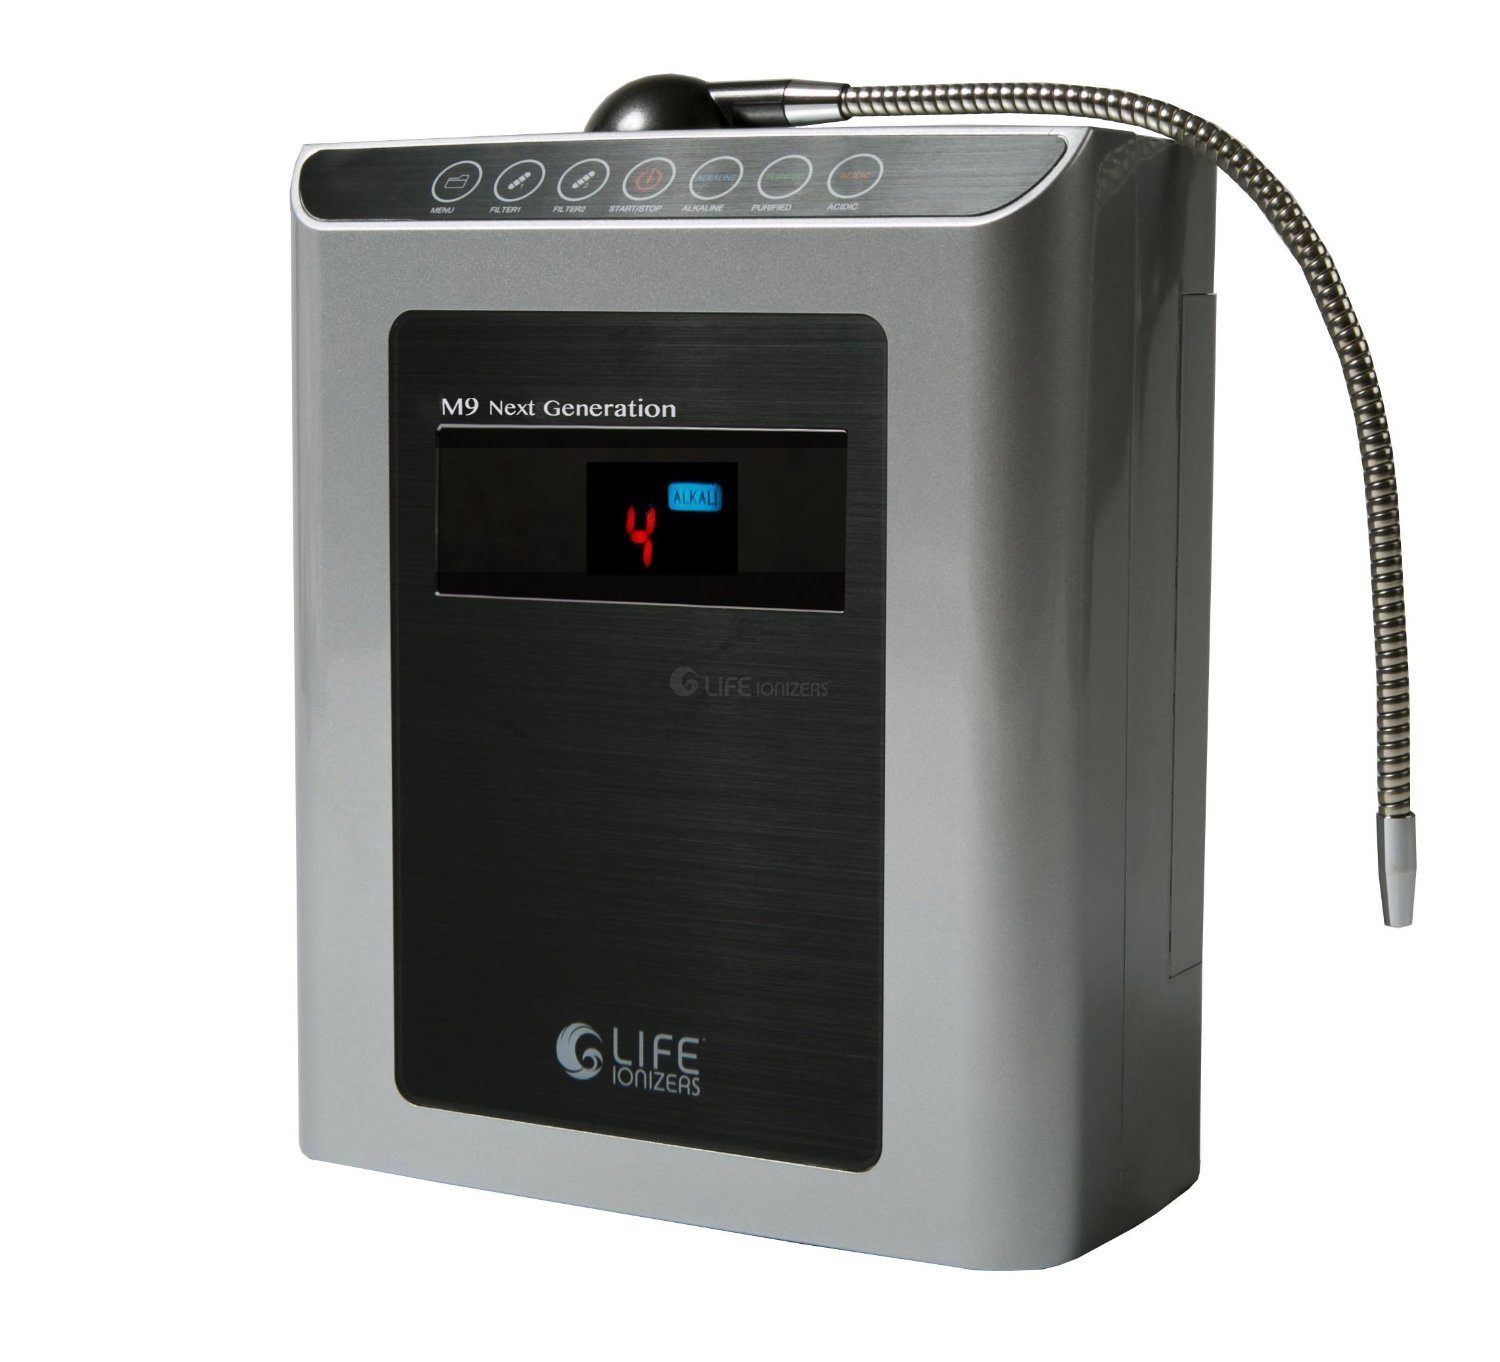 M9 Next Gen. Countertop Water Ionizer